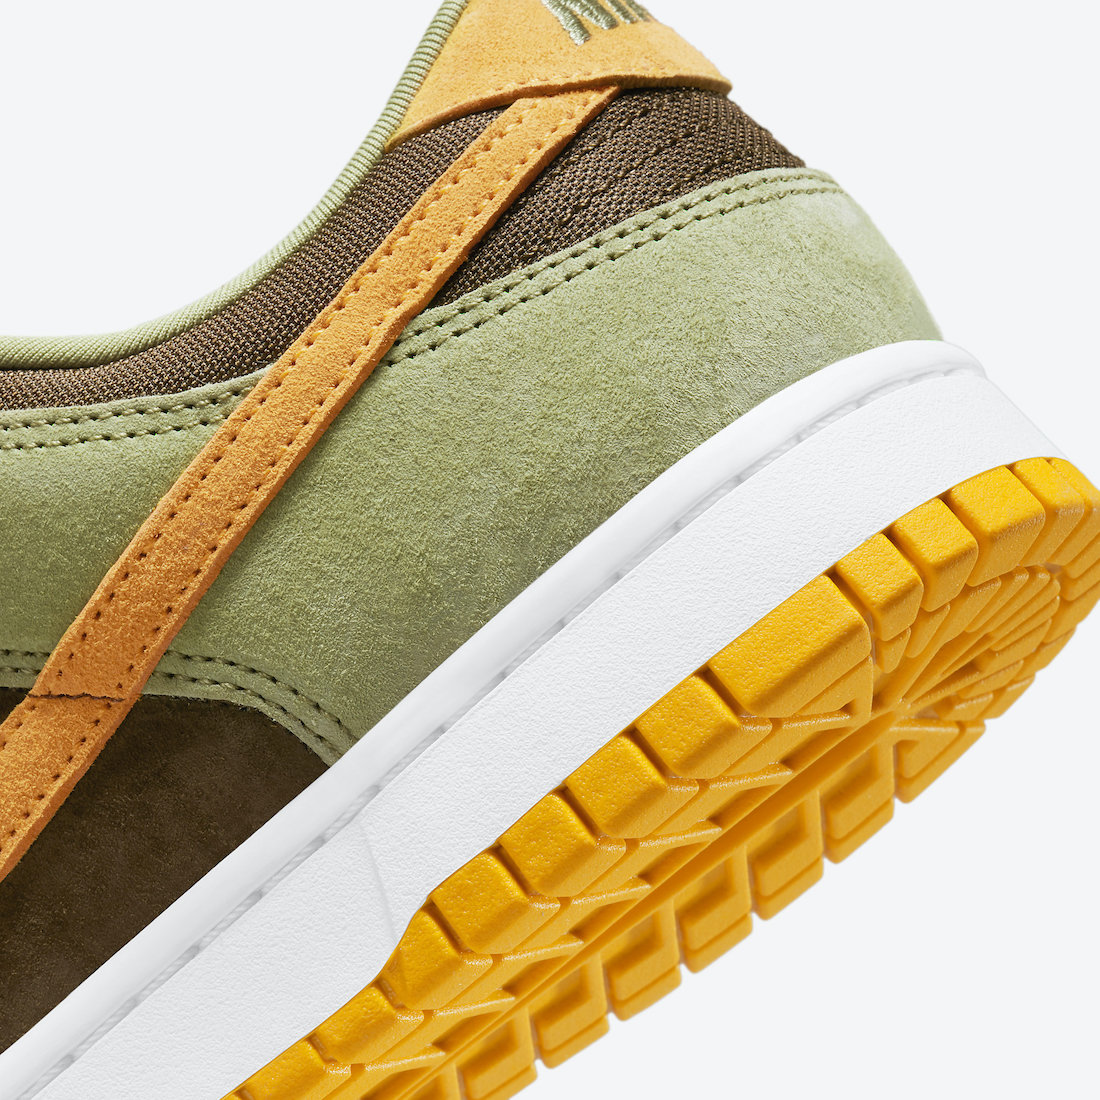 Nike,Dunk Low,Dusty Olive,DH53  SNKRS 上架!「丑小鸭 2.0」Dunk Low 明早发售!